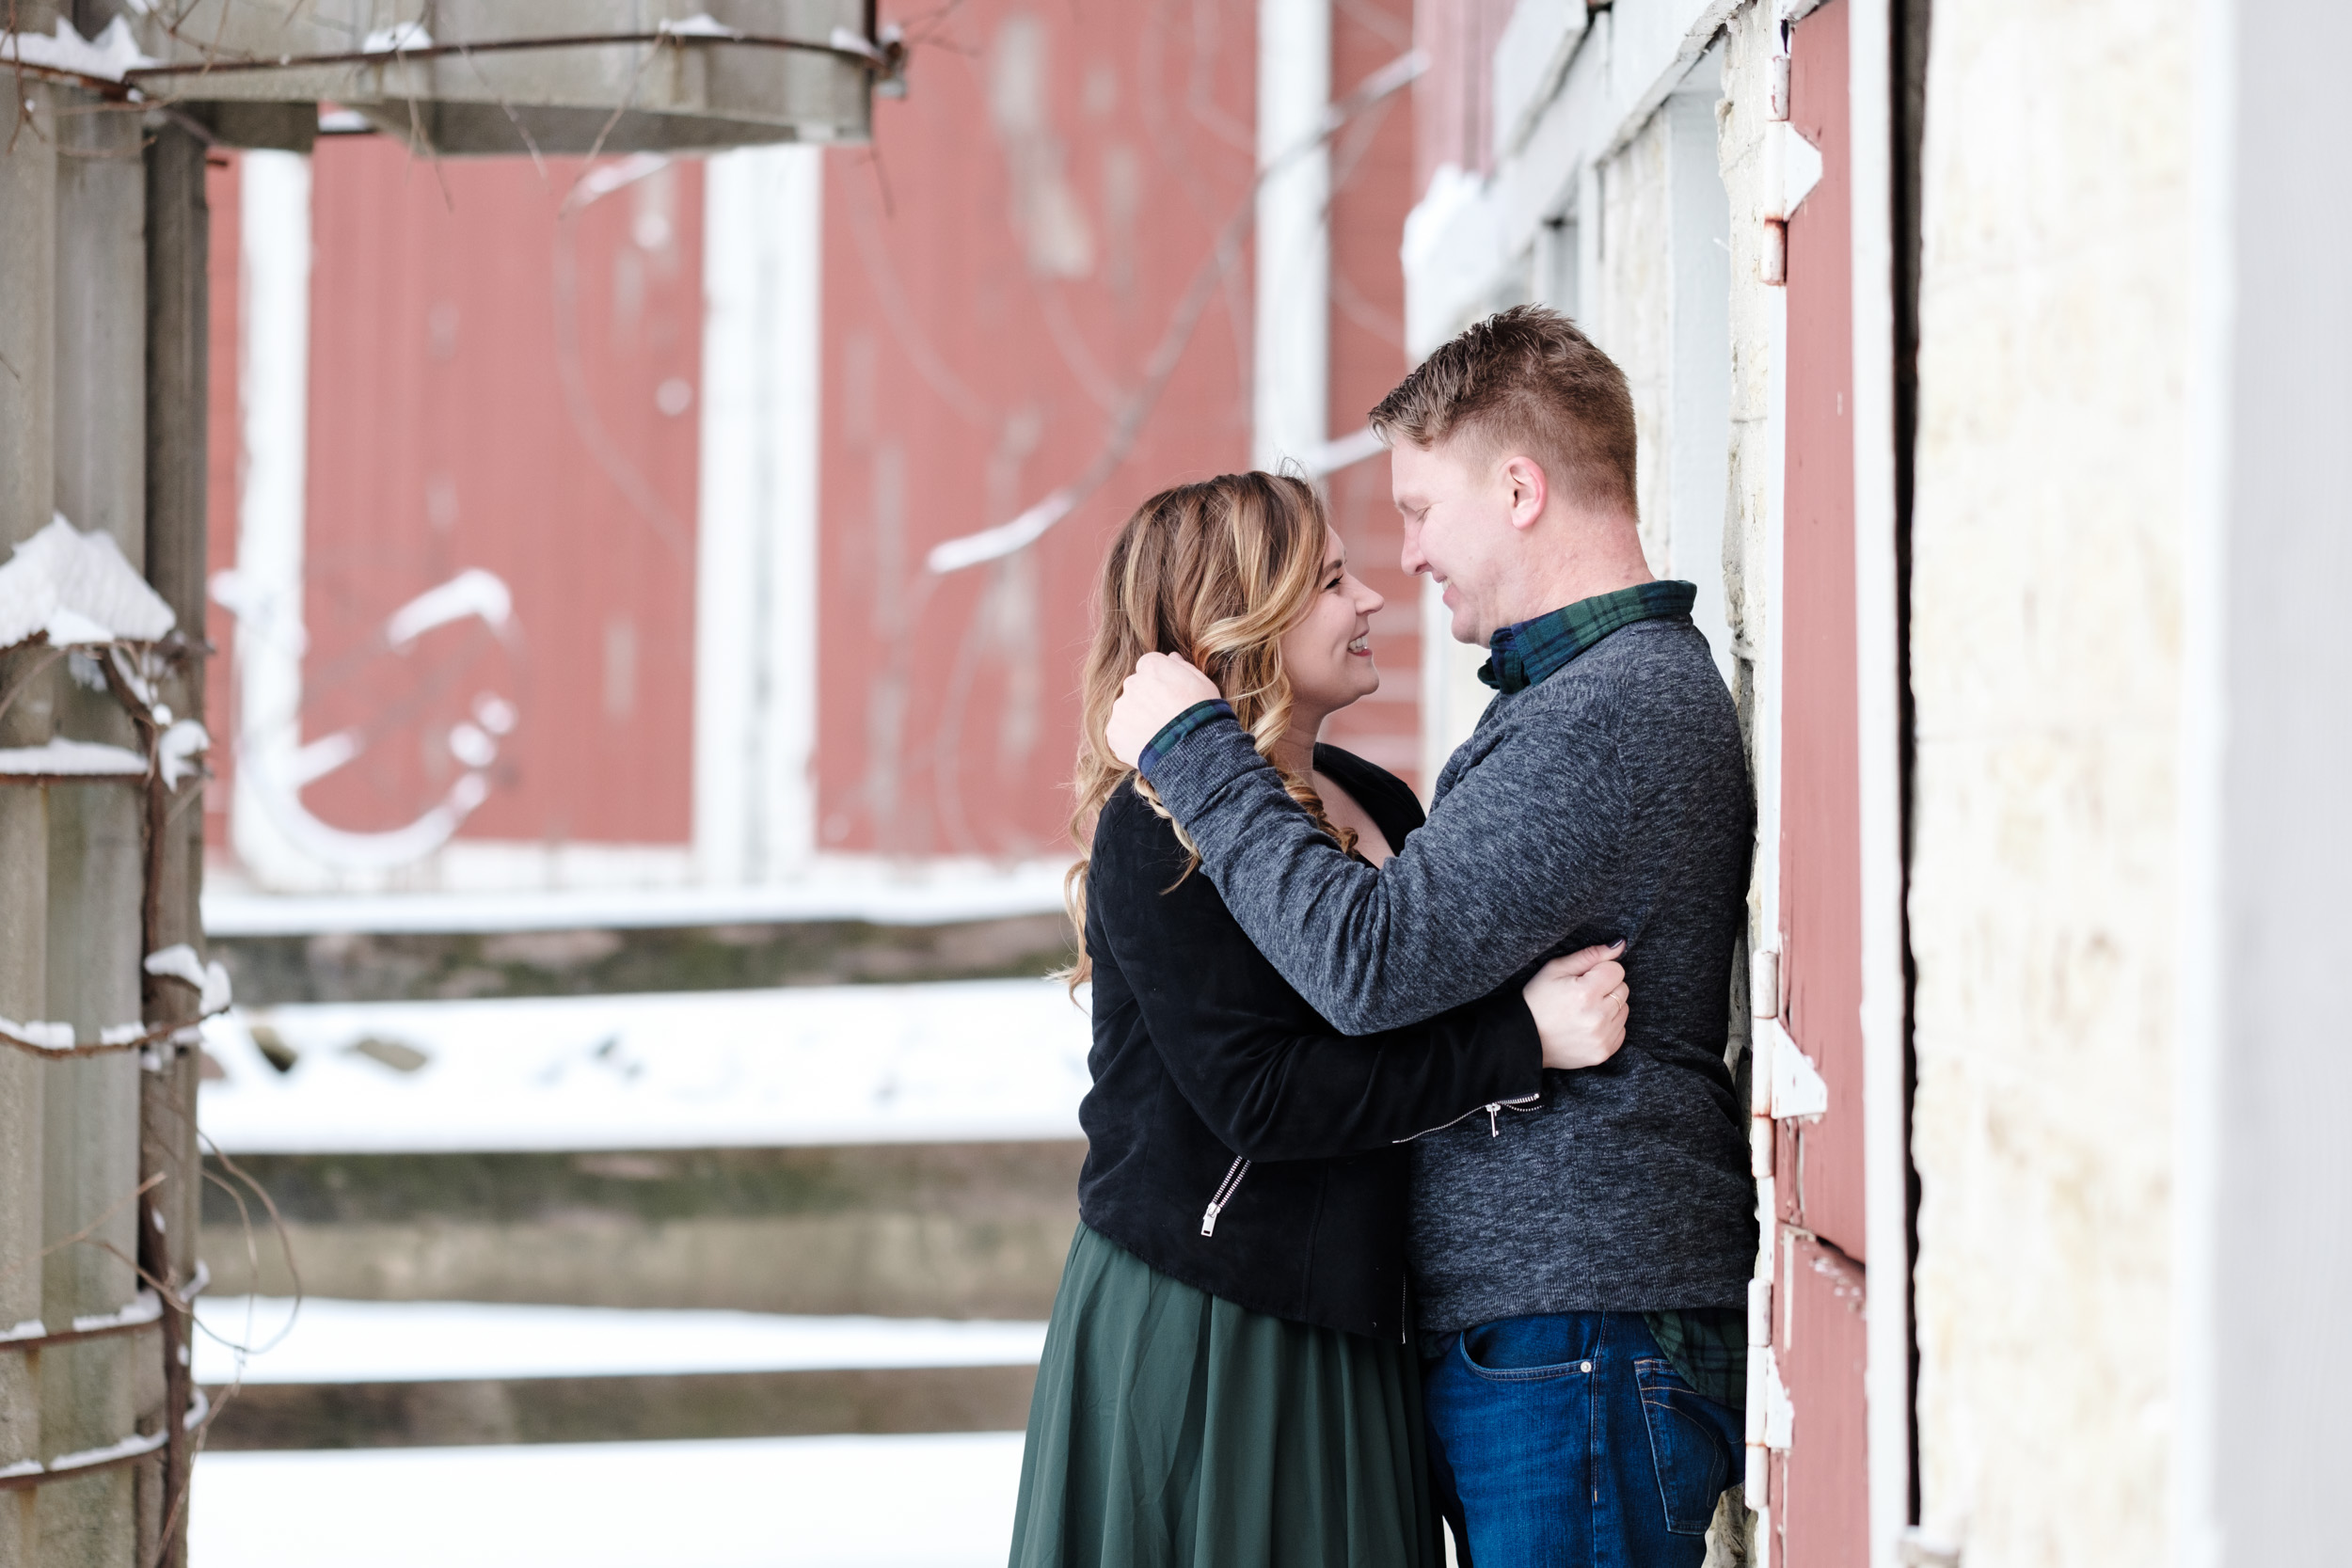 Engagement photo at orchard ridge farms the pavilion, couple leaning against the red barn and candidly embracing